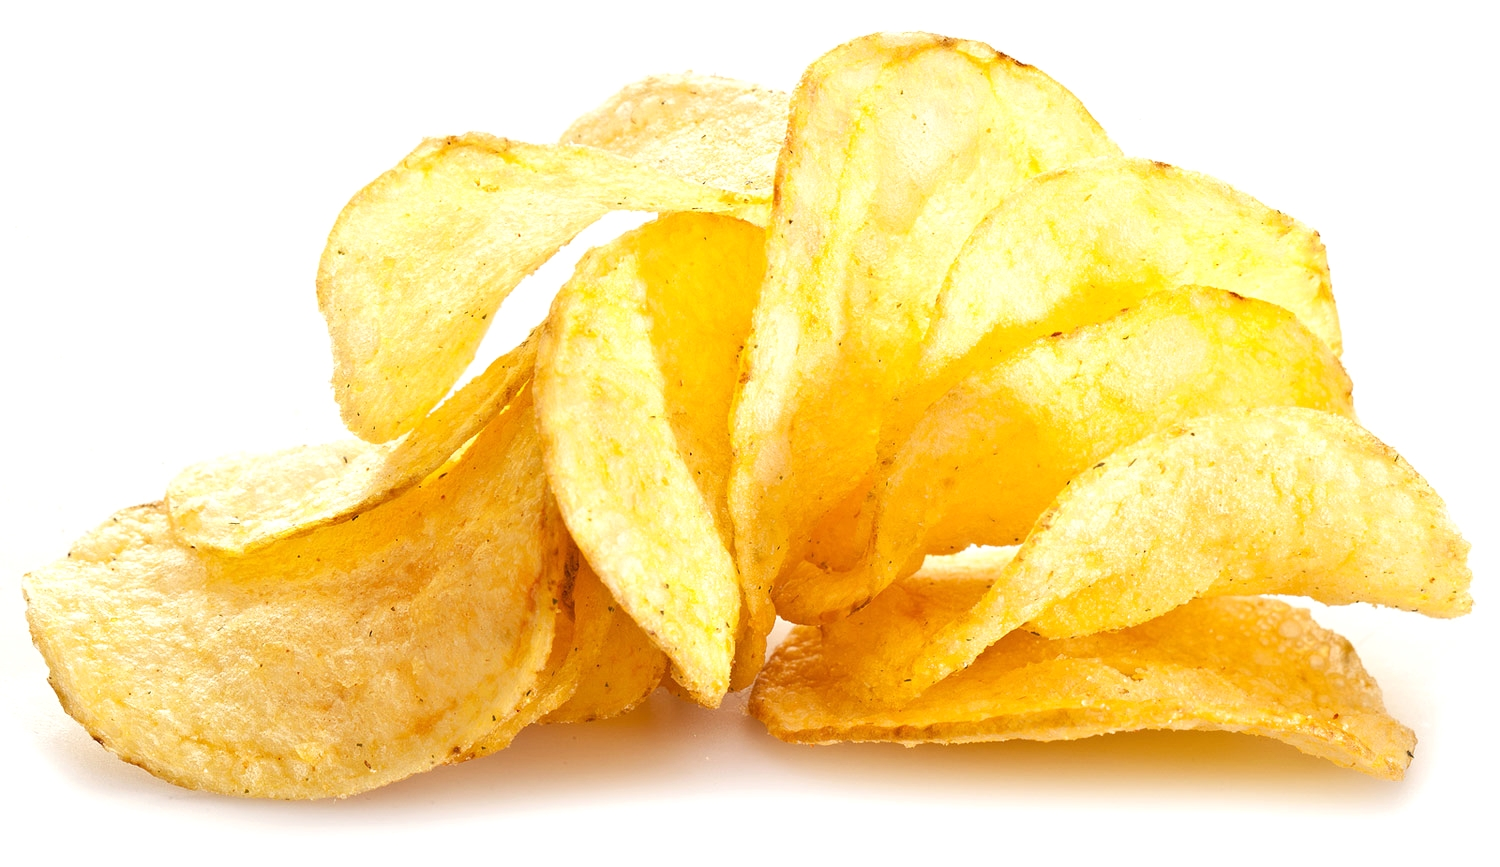 bigstock-Potato-chips-on-a-white-backgr-58970891.jpg